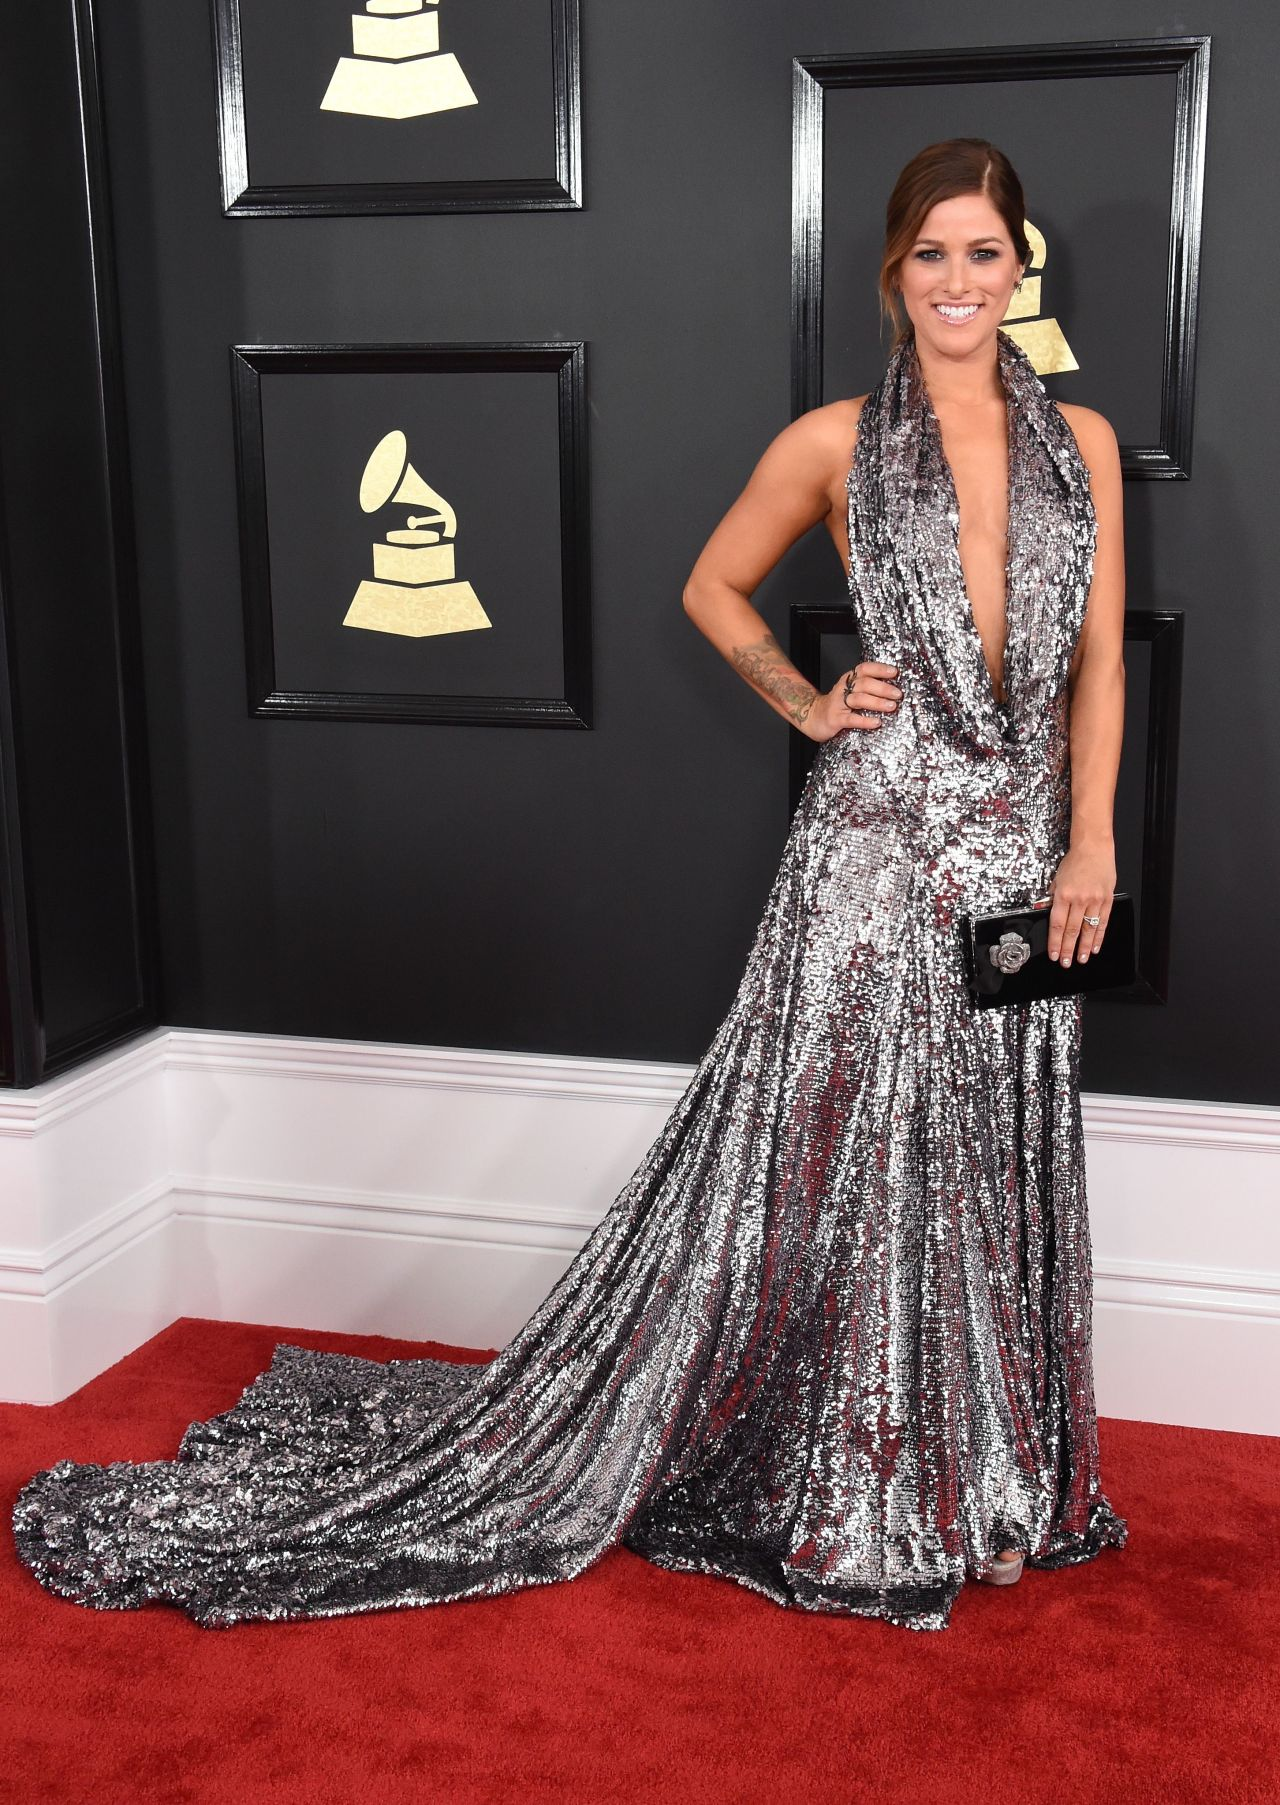 Image: Cassadee Pope on 2017 Grammy